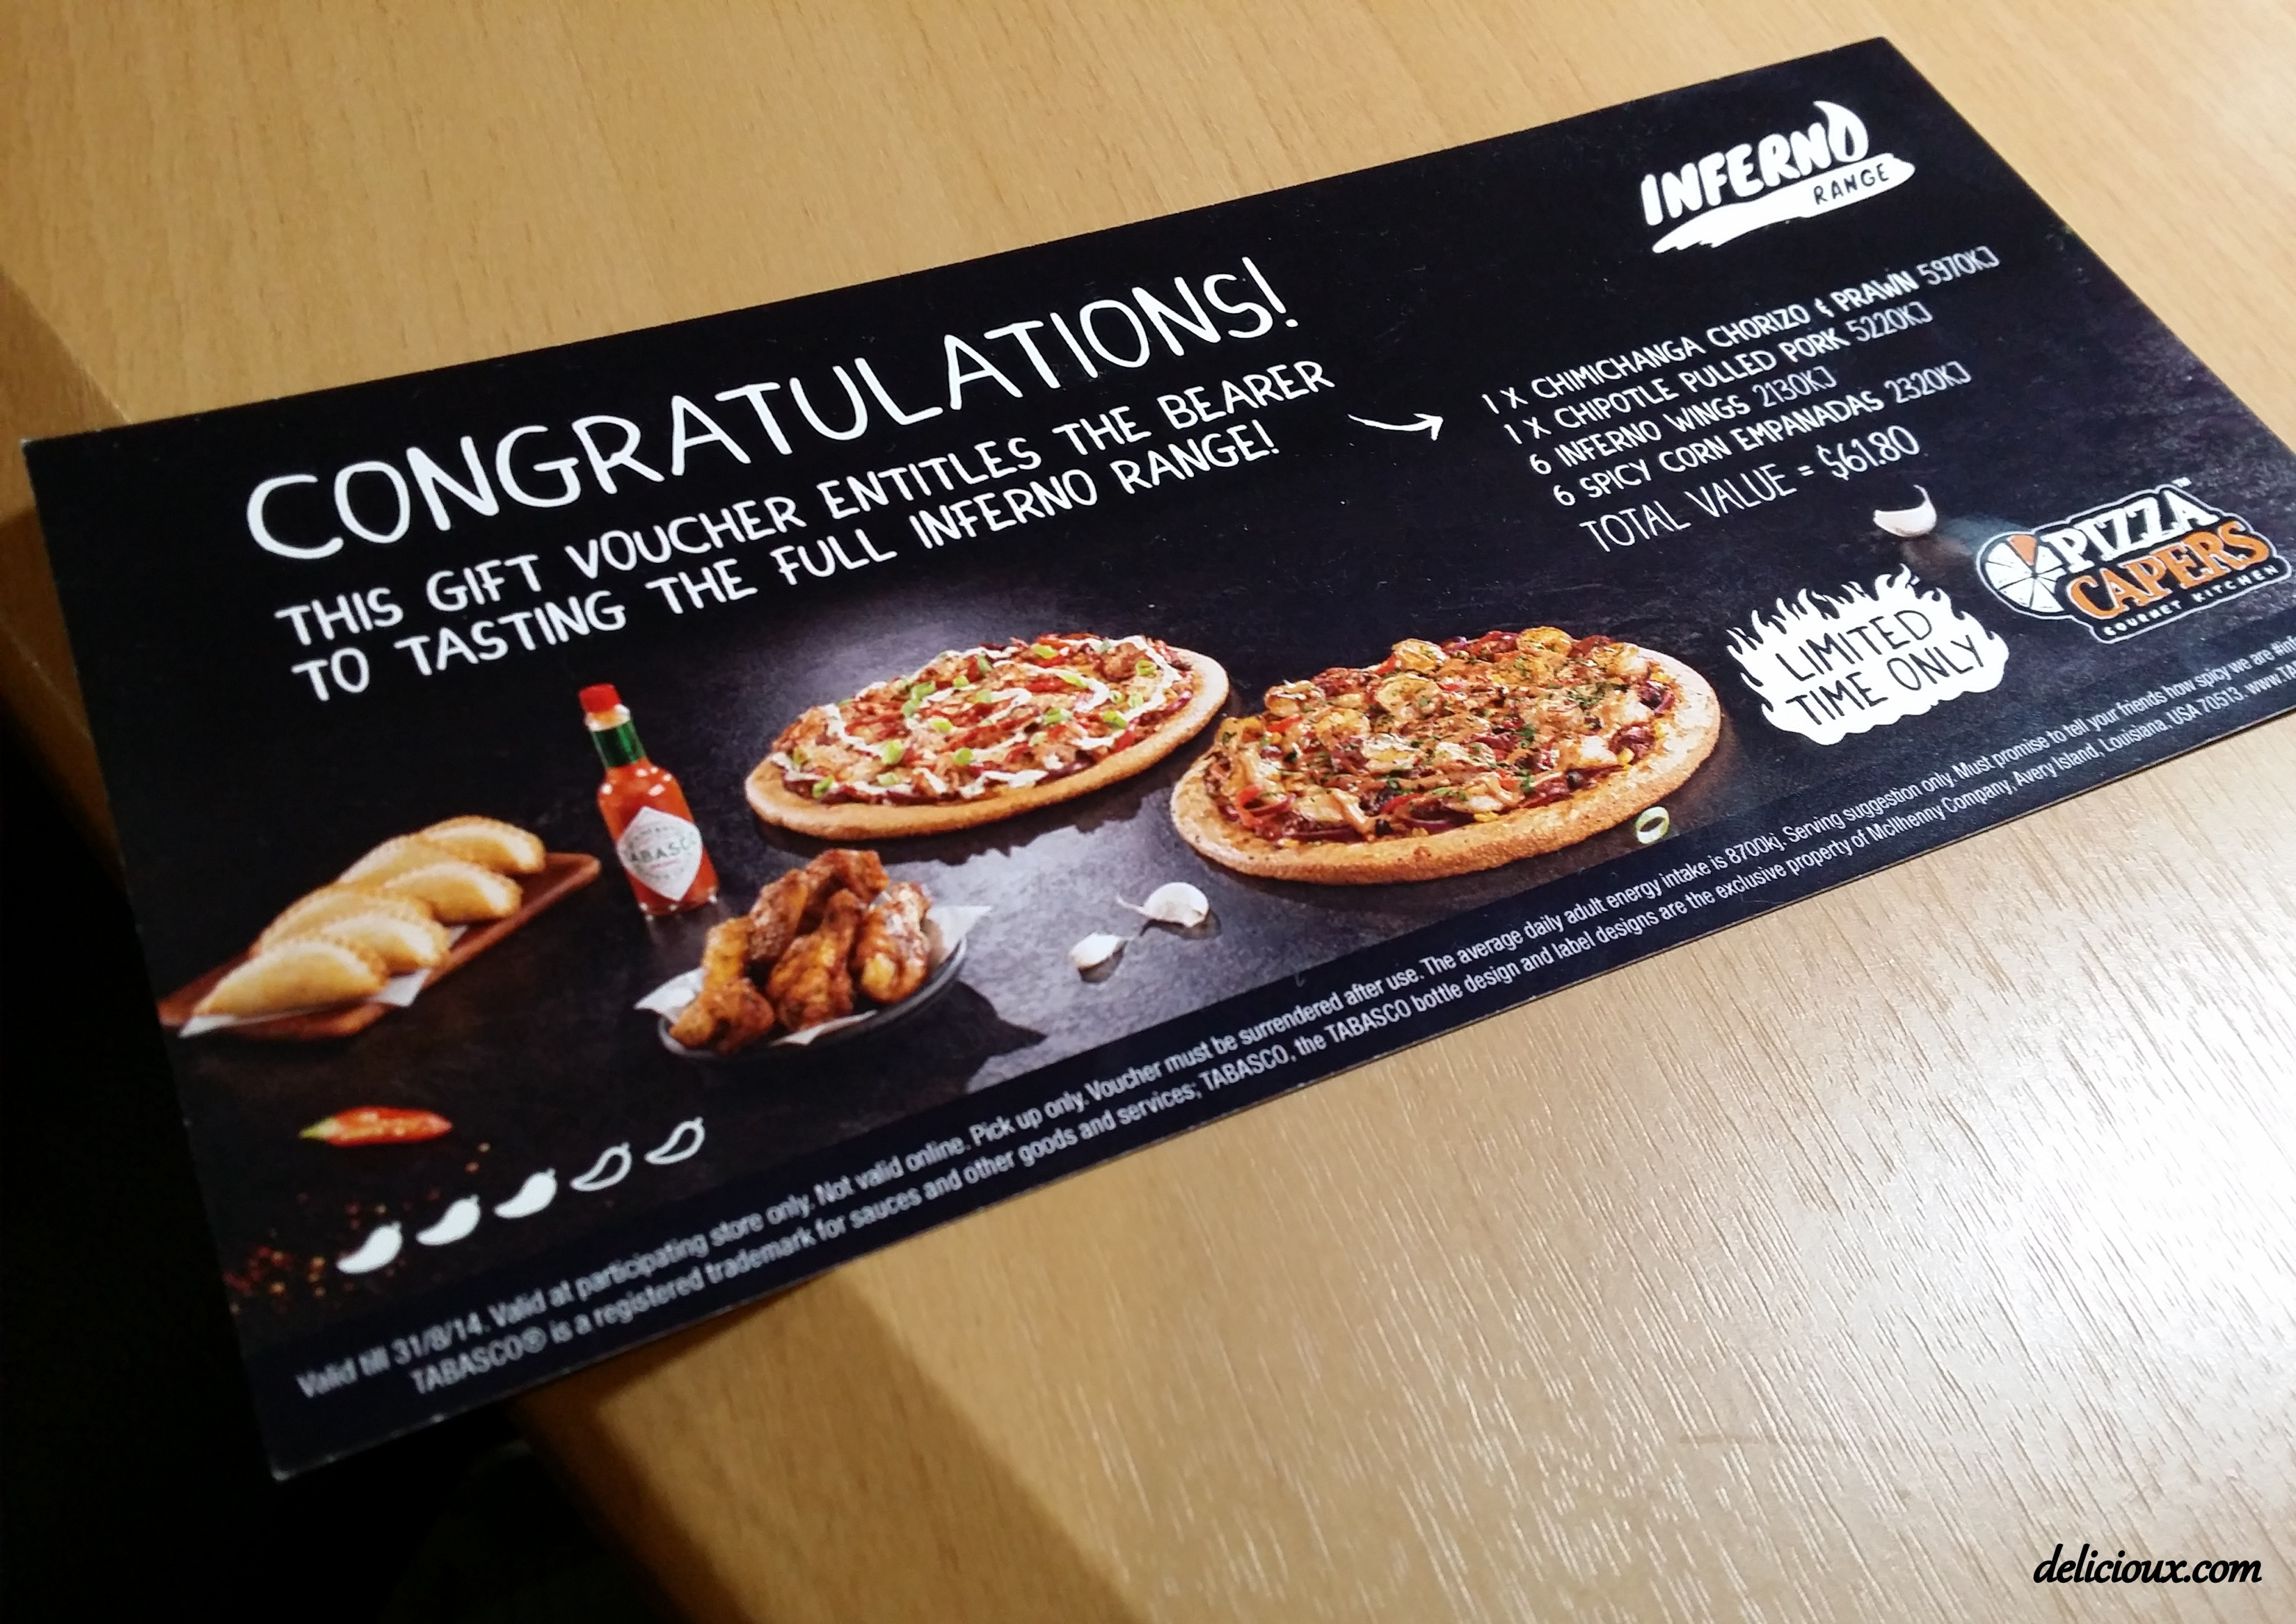 Pizzacapers.com.au Coupons & Offers